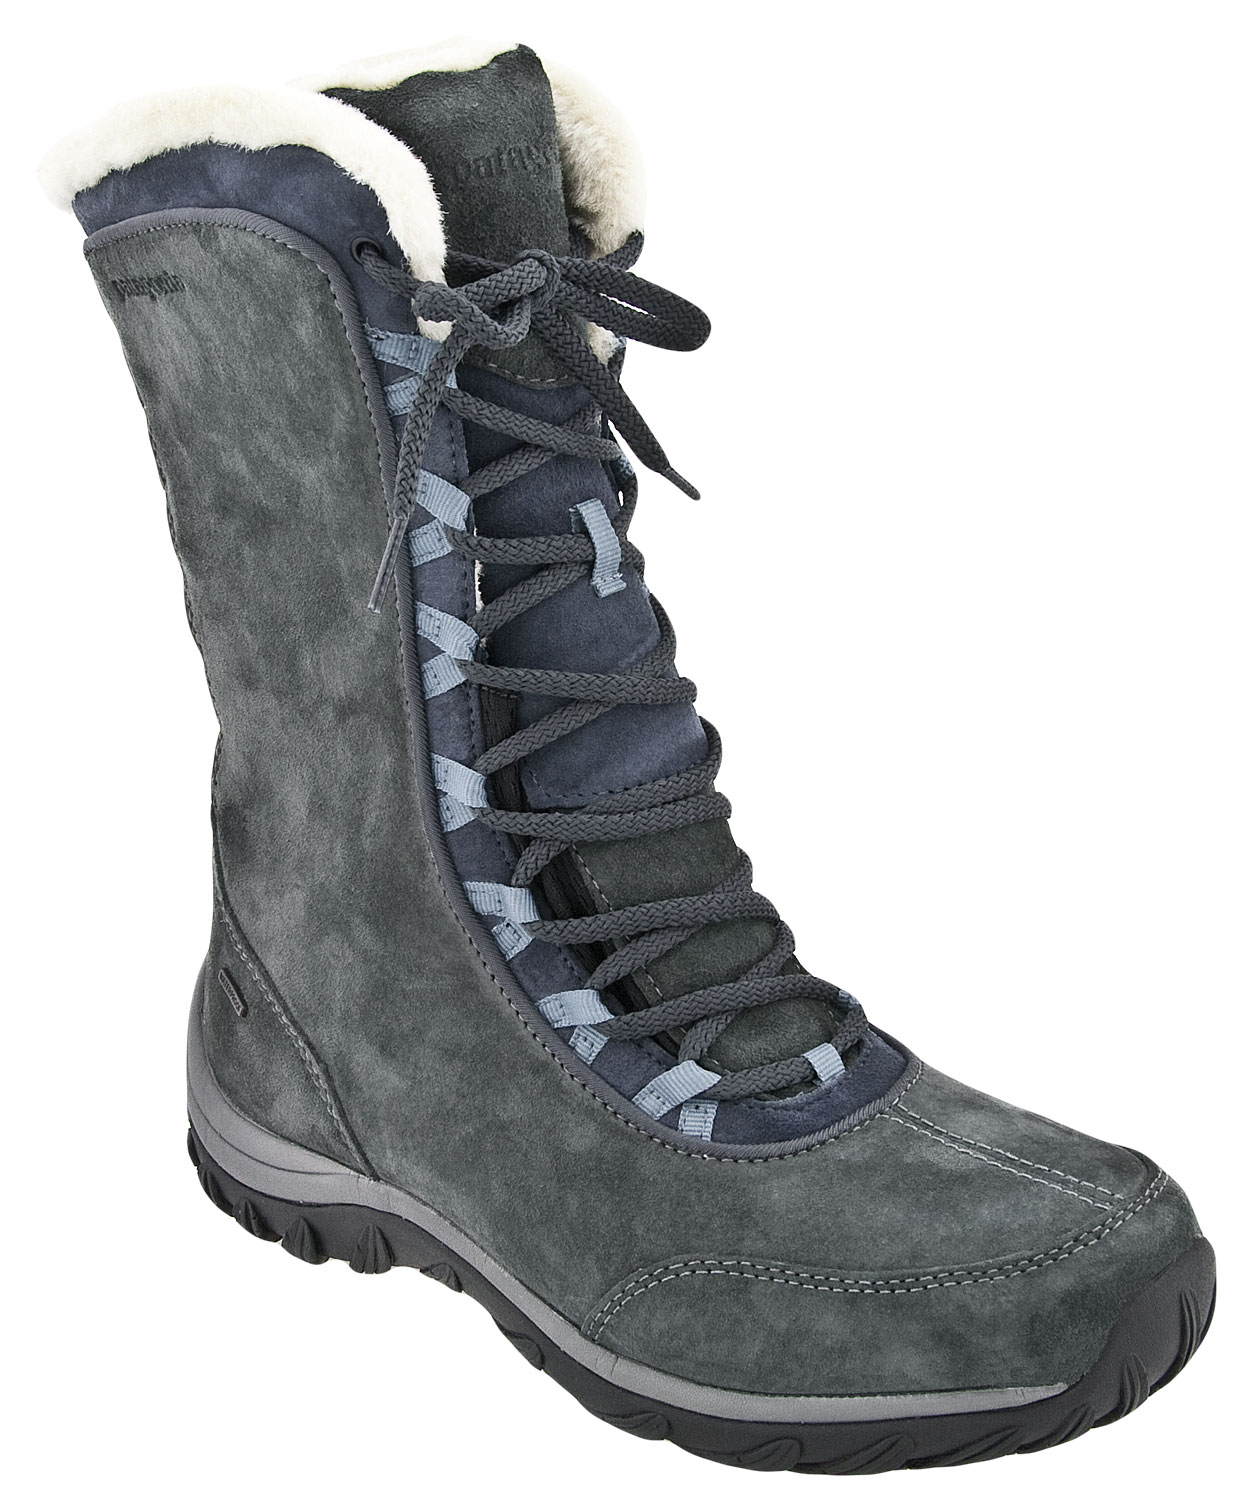 Groovy Green Livin Patagonia Boots